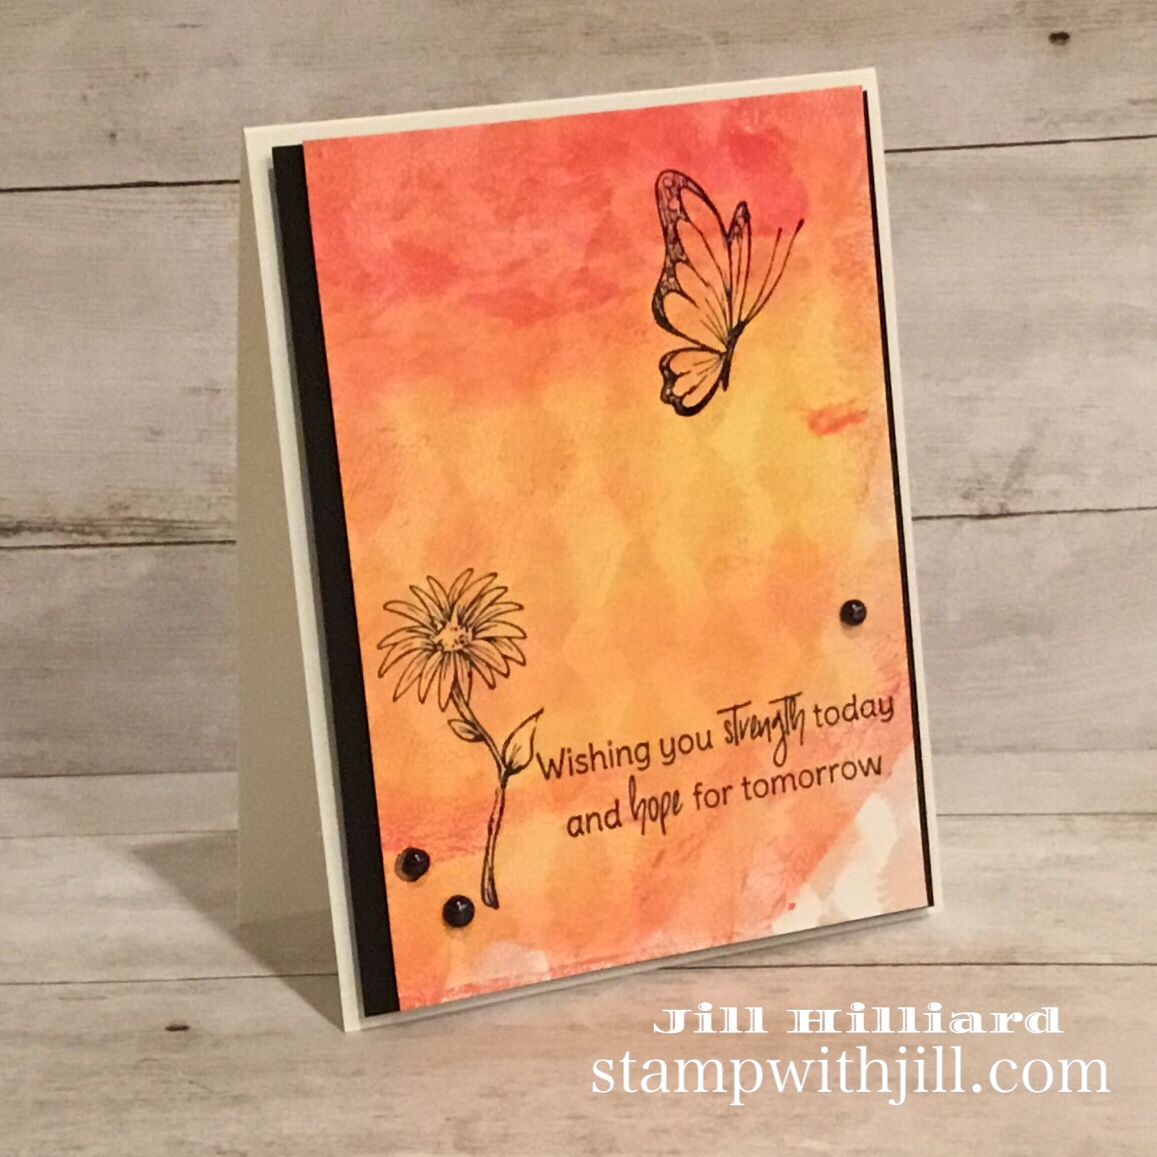 gel press card, strength and hope